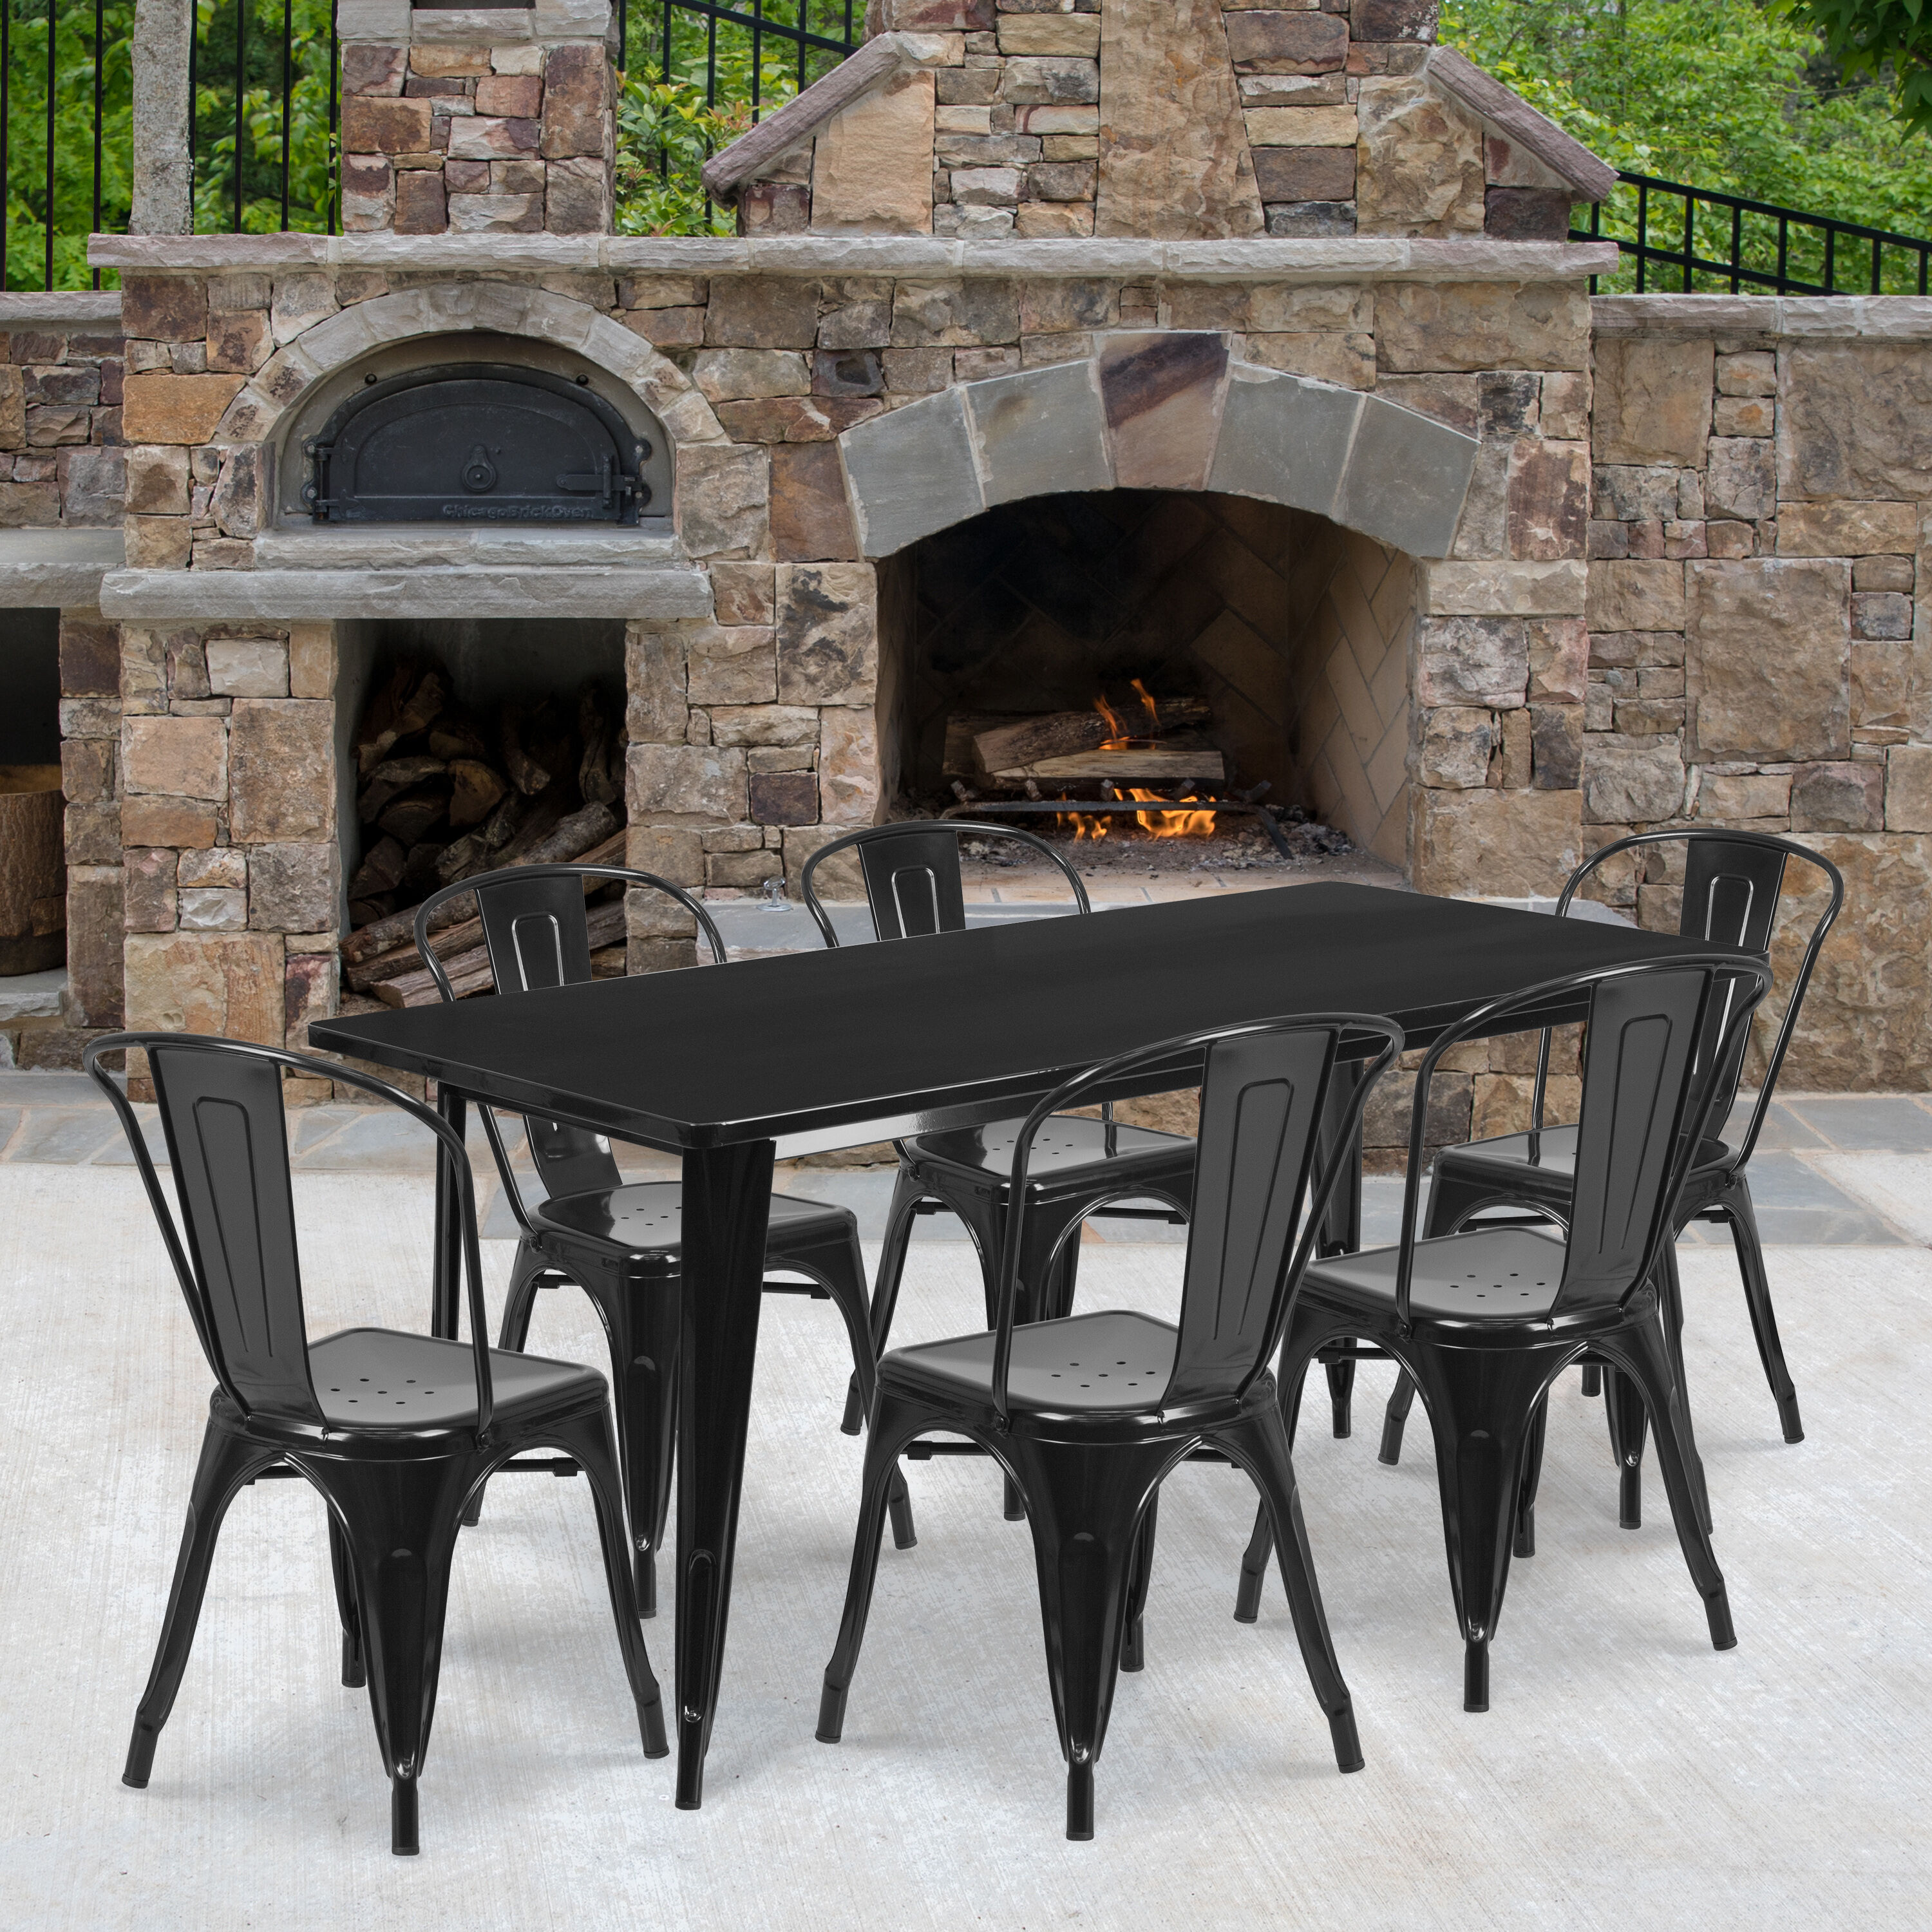 commercial grade 31 5 x 63 rectangular black metal indoor outdoor table set with 6 stack chairs